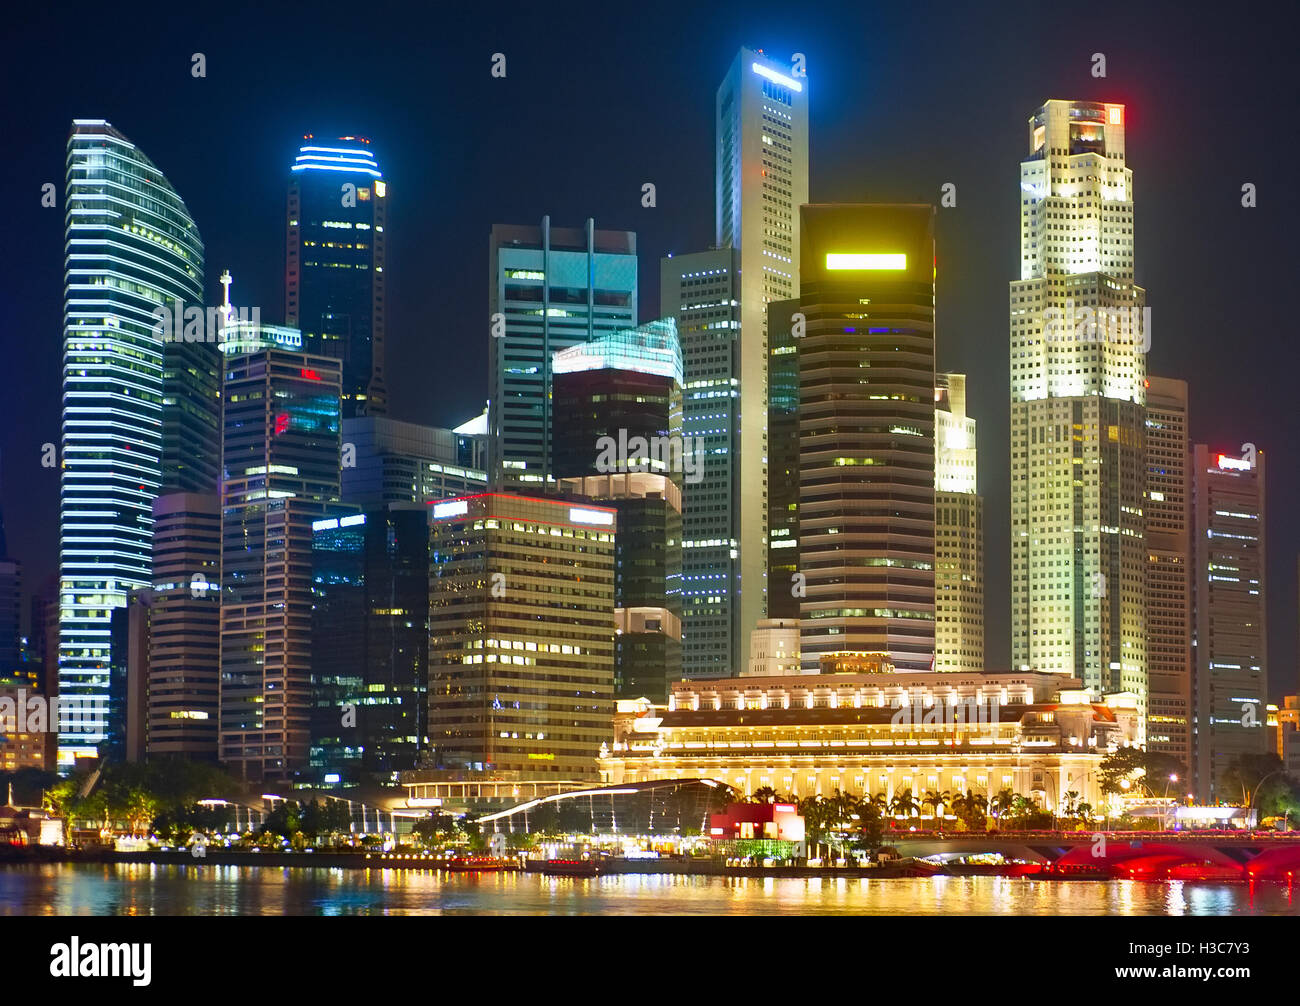 Singapore Cowntown Core in neon lights - Stock Image